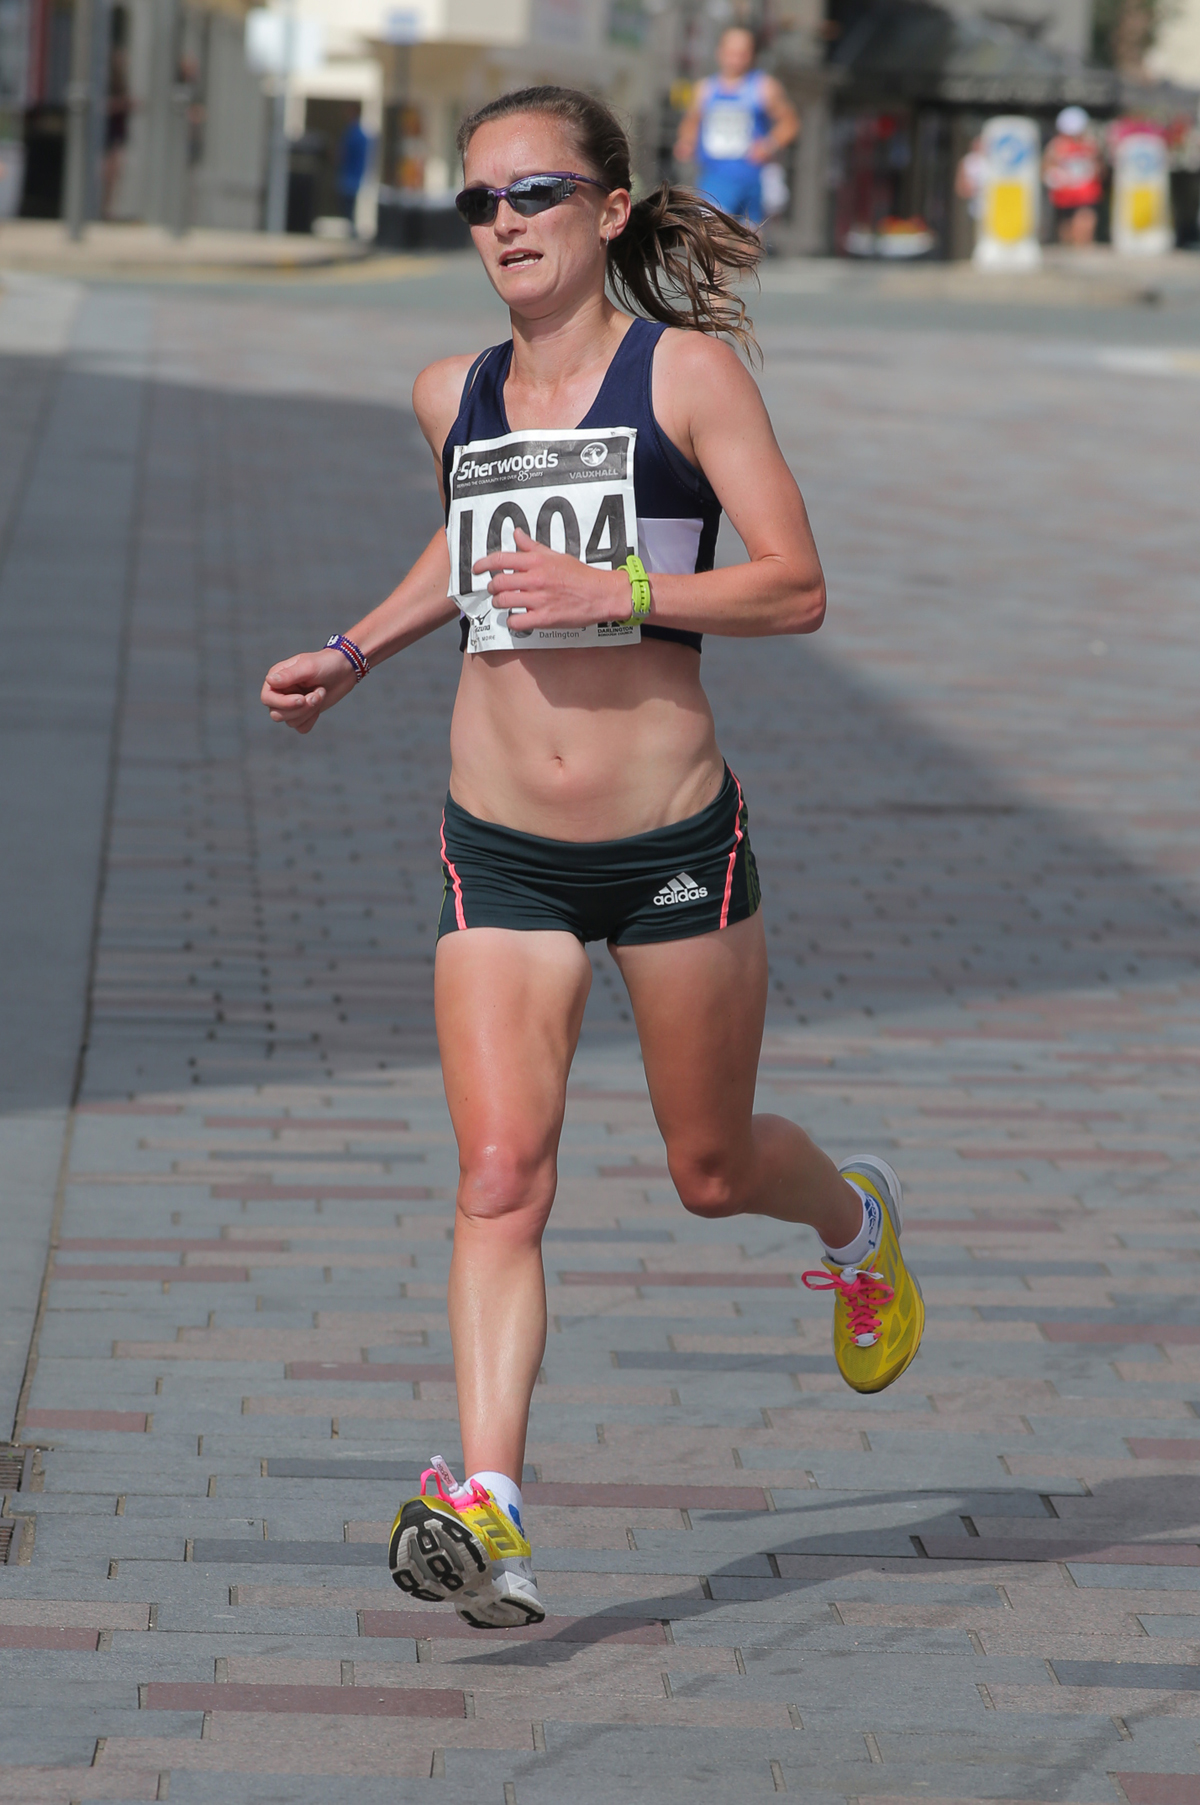 CONFIRMED STARTER: Wearsider Alyson Dixon will compete in next month's Sunderland City Half Marathon